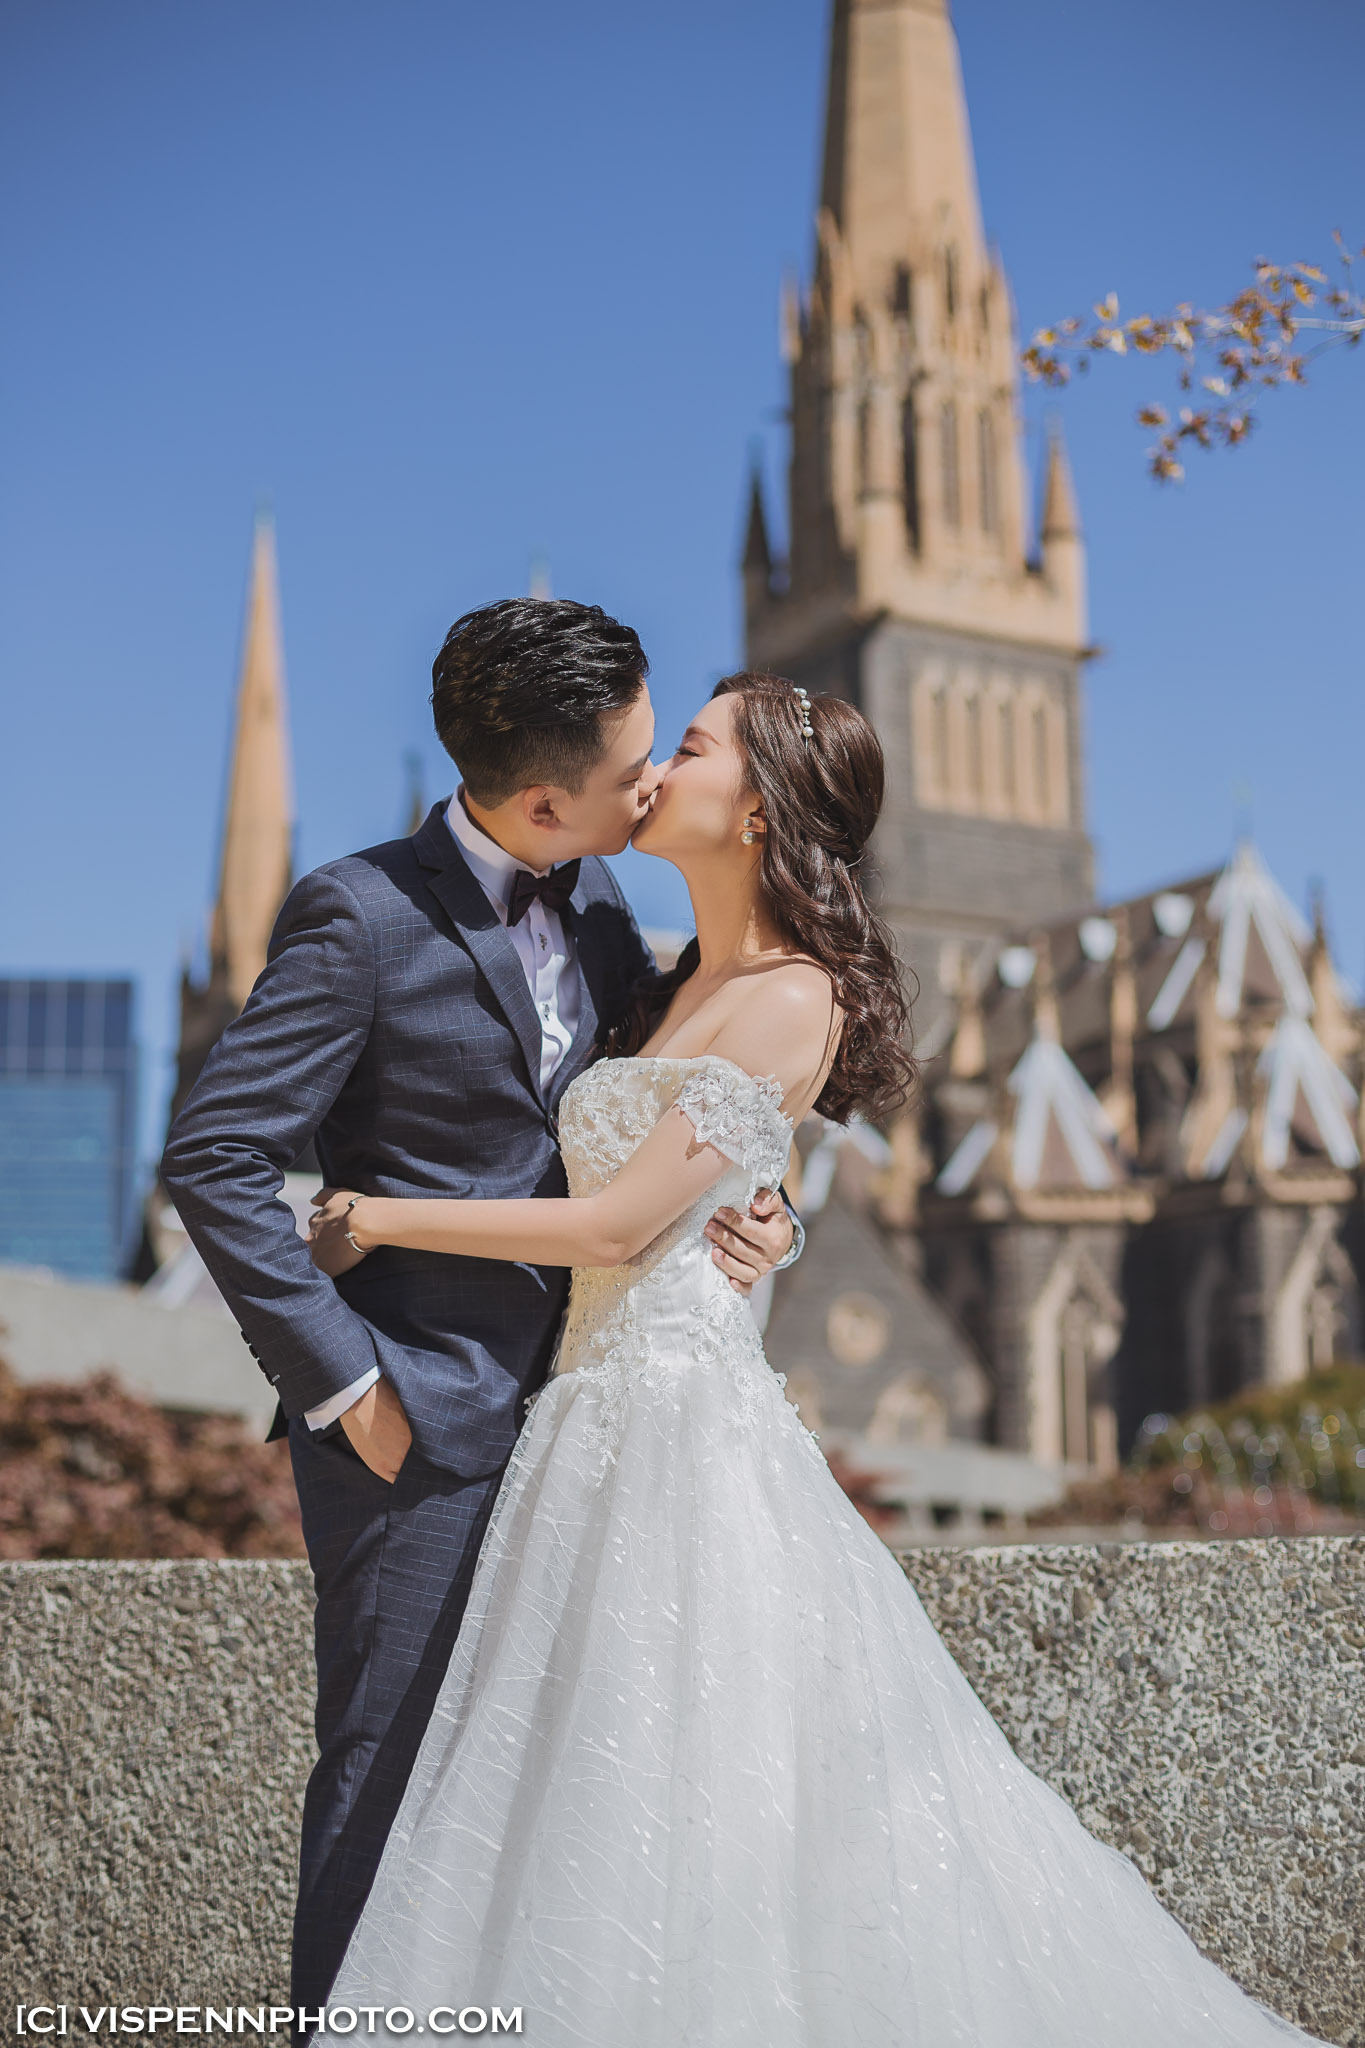 PRE WEDDING Photography Melbourne AndyCHEN 0235 1DX ZHPENN